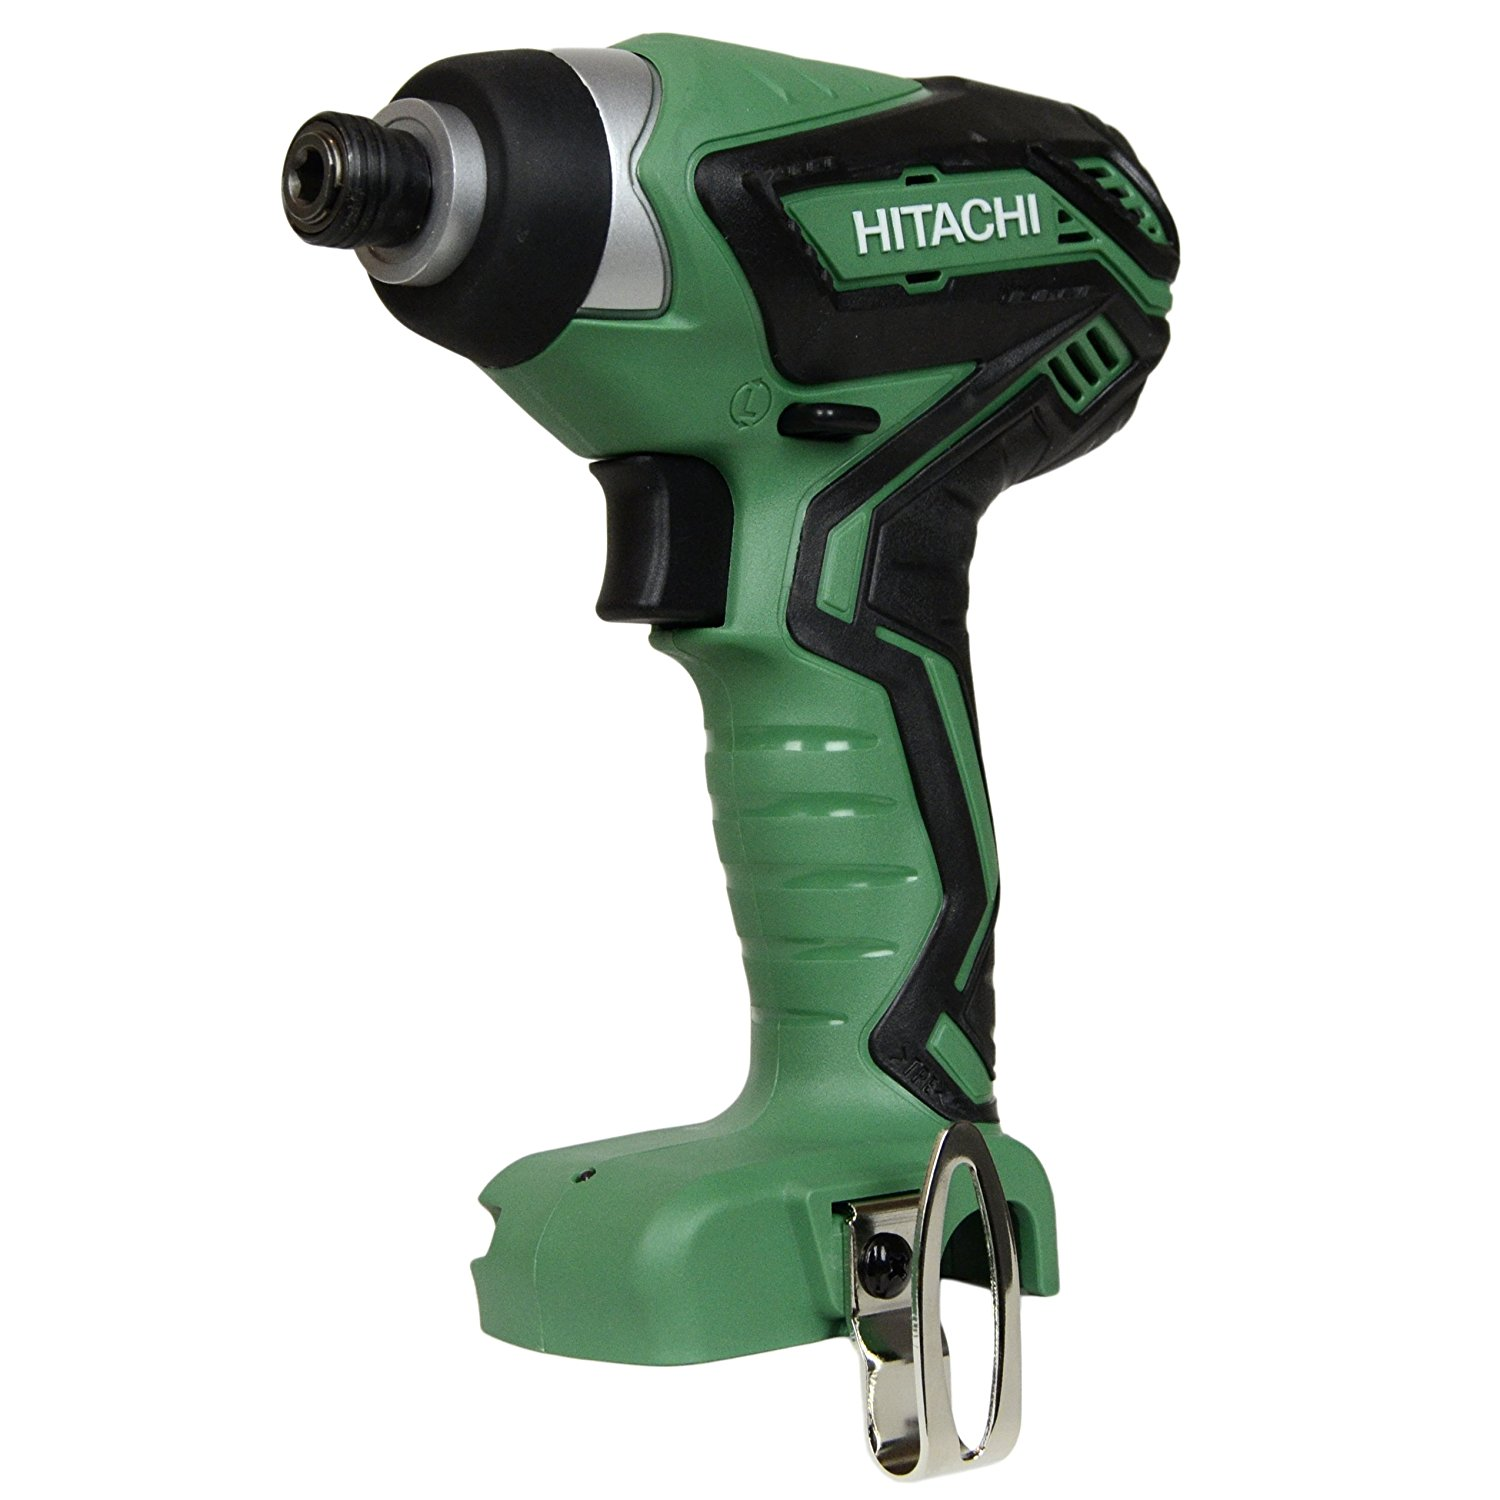 "HITACHI WH10DFL2 TOOL ONLY Factory Reconditioned 1/4"" 12V Peak Li-Ion 12 Volt Cordless Impact Driver"